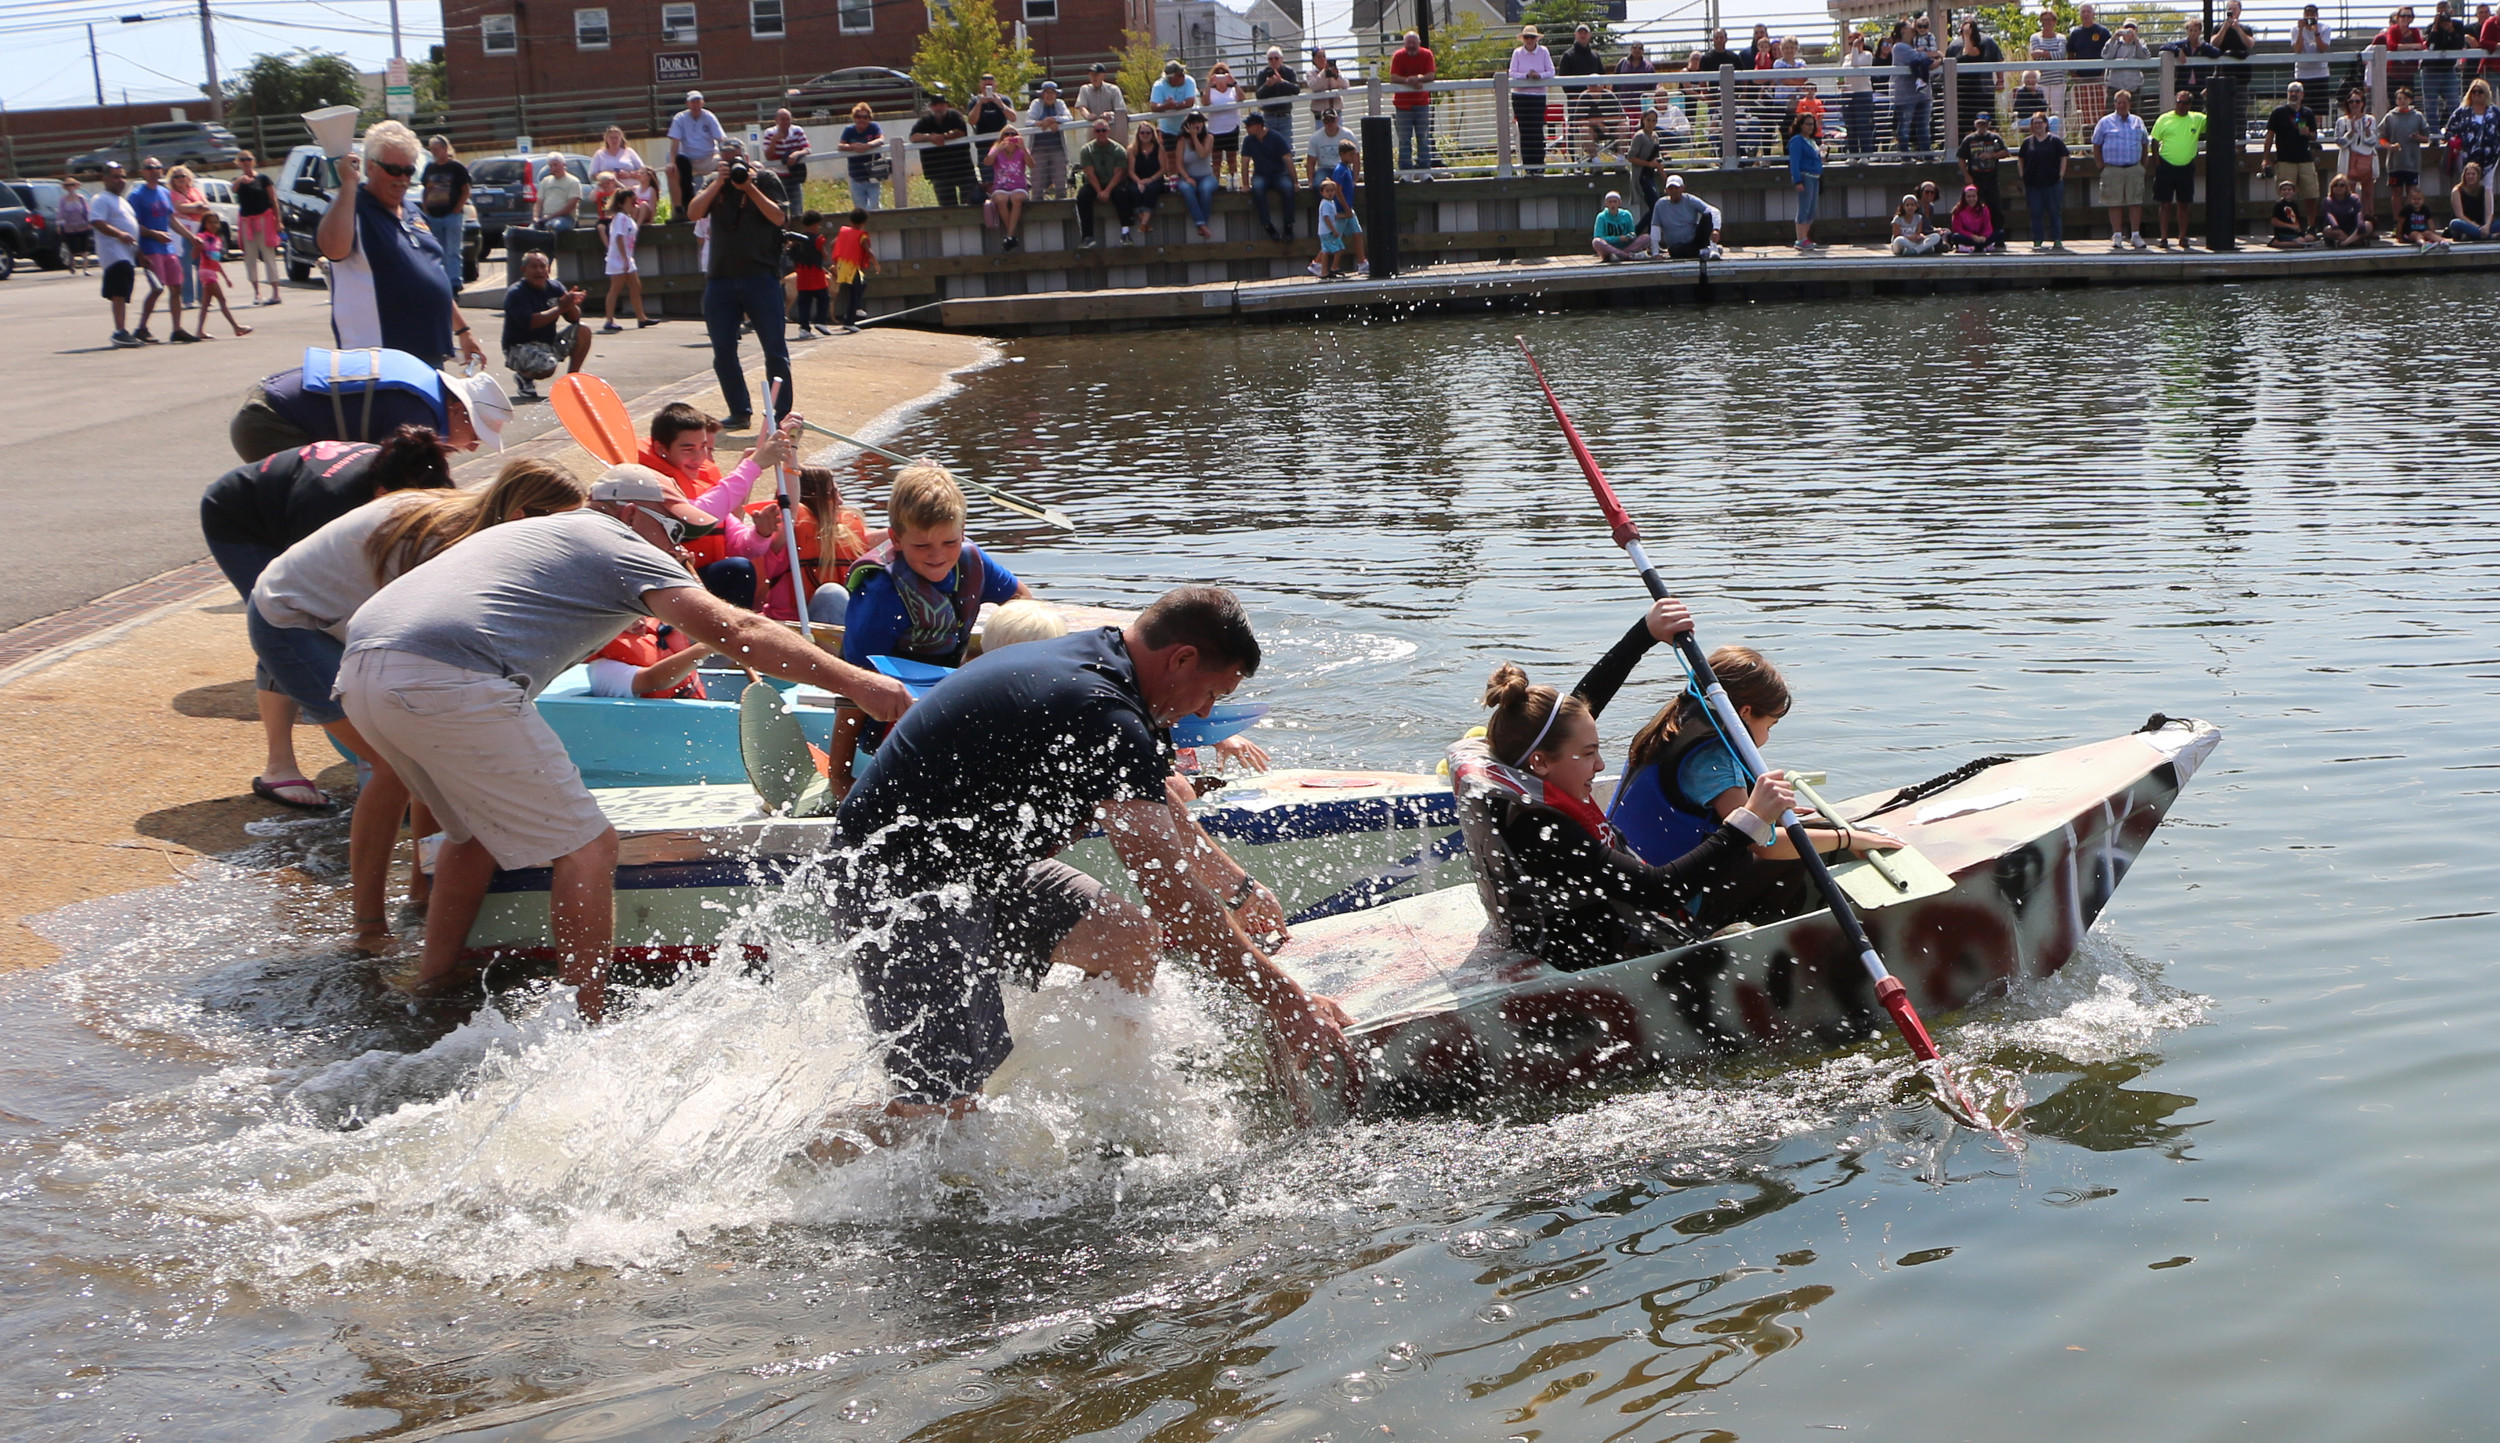 junior rowers in the Baldwin Cardboard Boat Race got off to a fast start during the childrens' event.